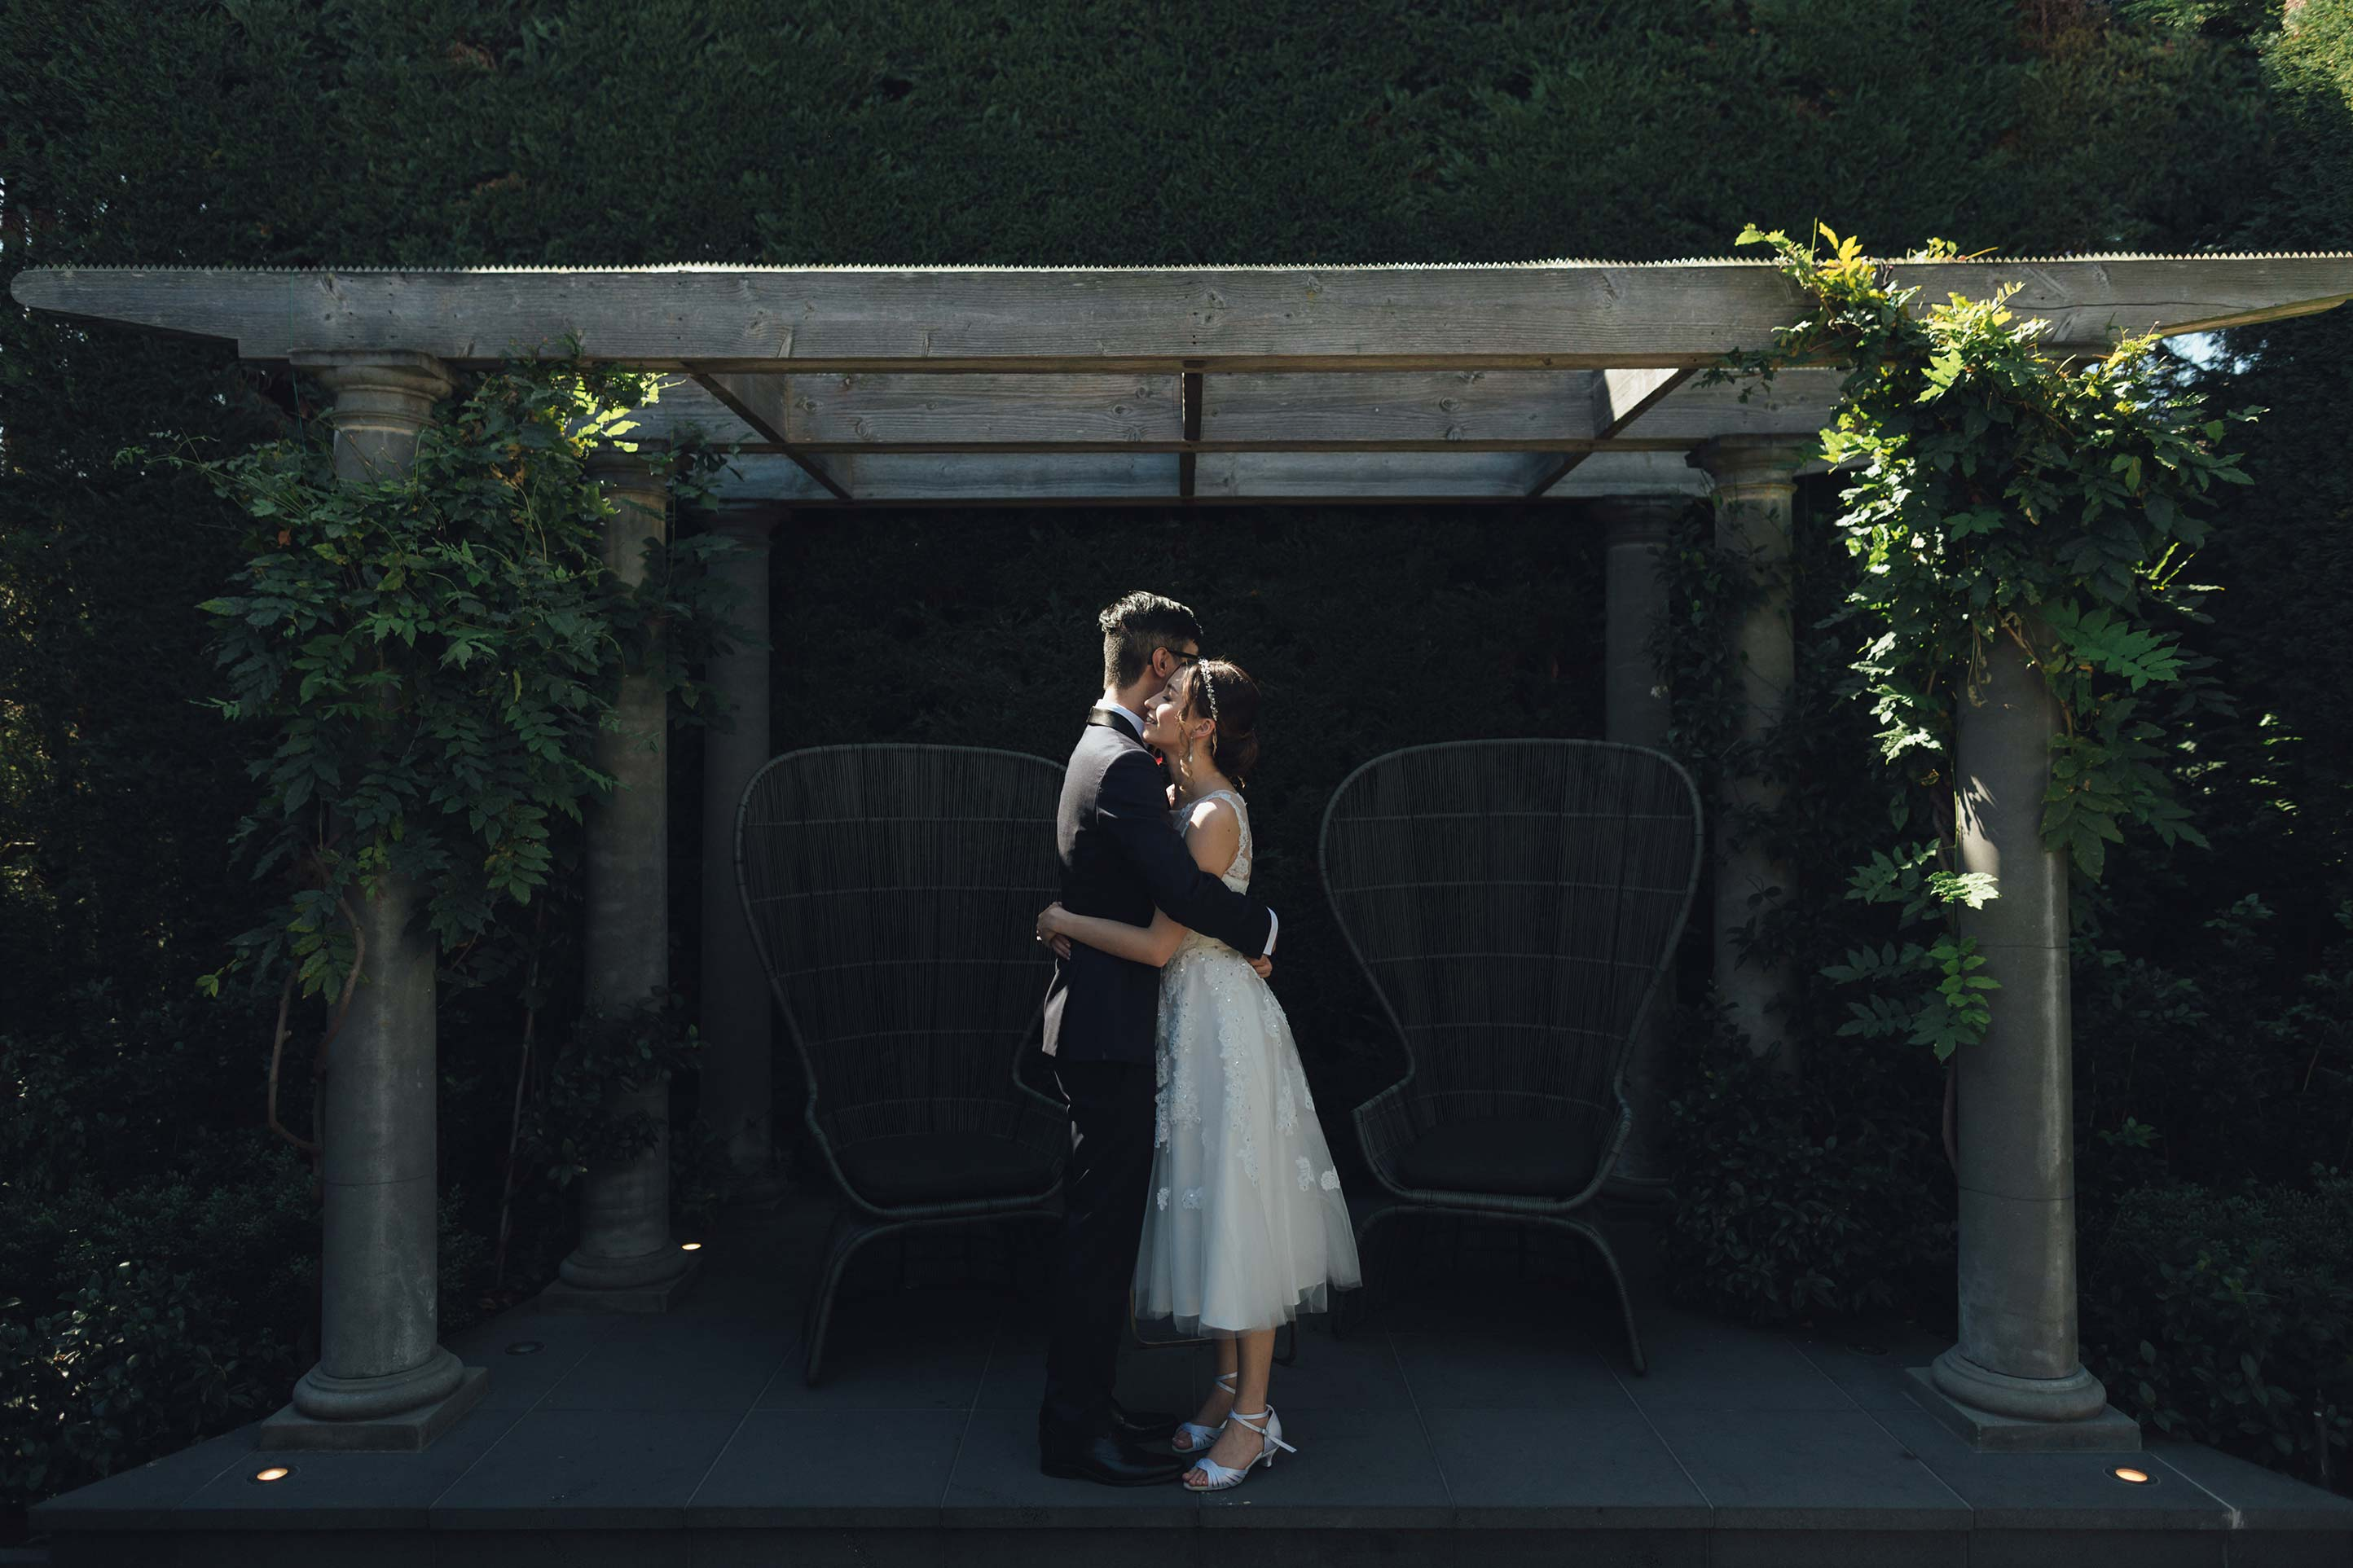 Melbourne-ripponlea-wedding-photographer-quat-quatta-lunch-reception-courtyard-portrait